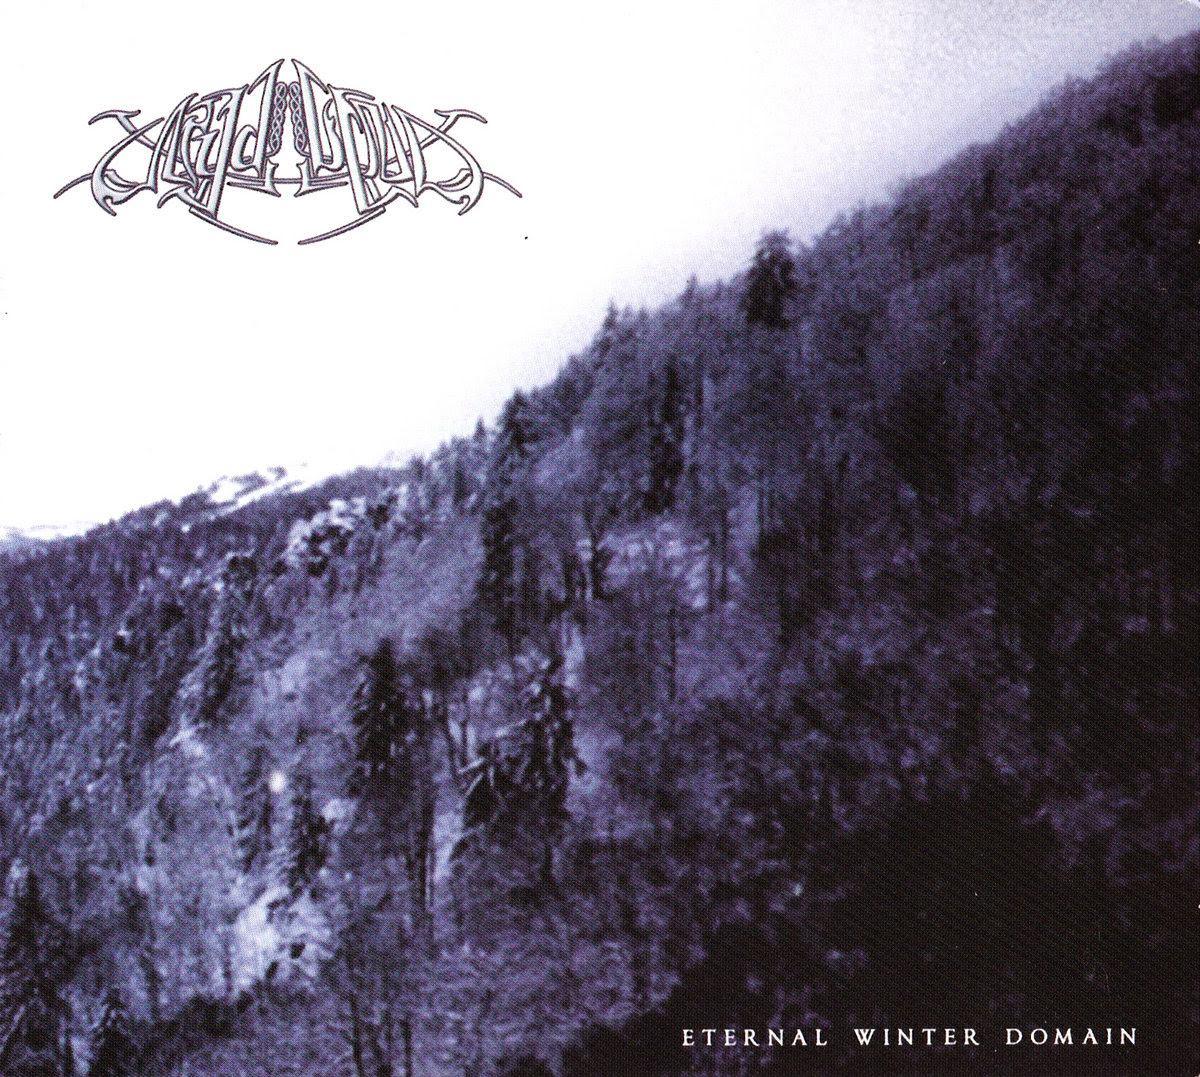 Nydvind - Eternal Winter Domain (Rereleased 2006)